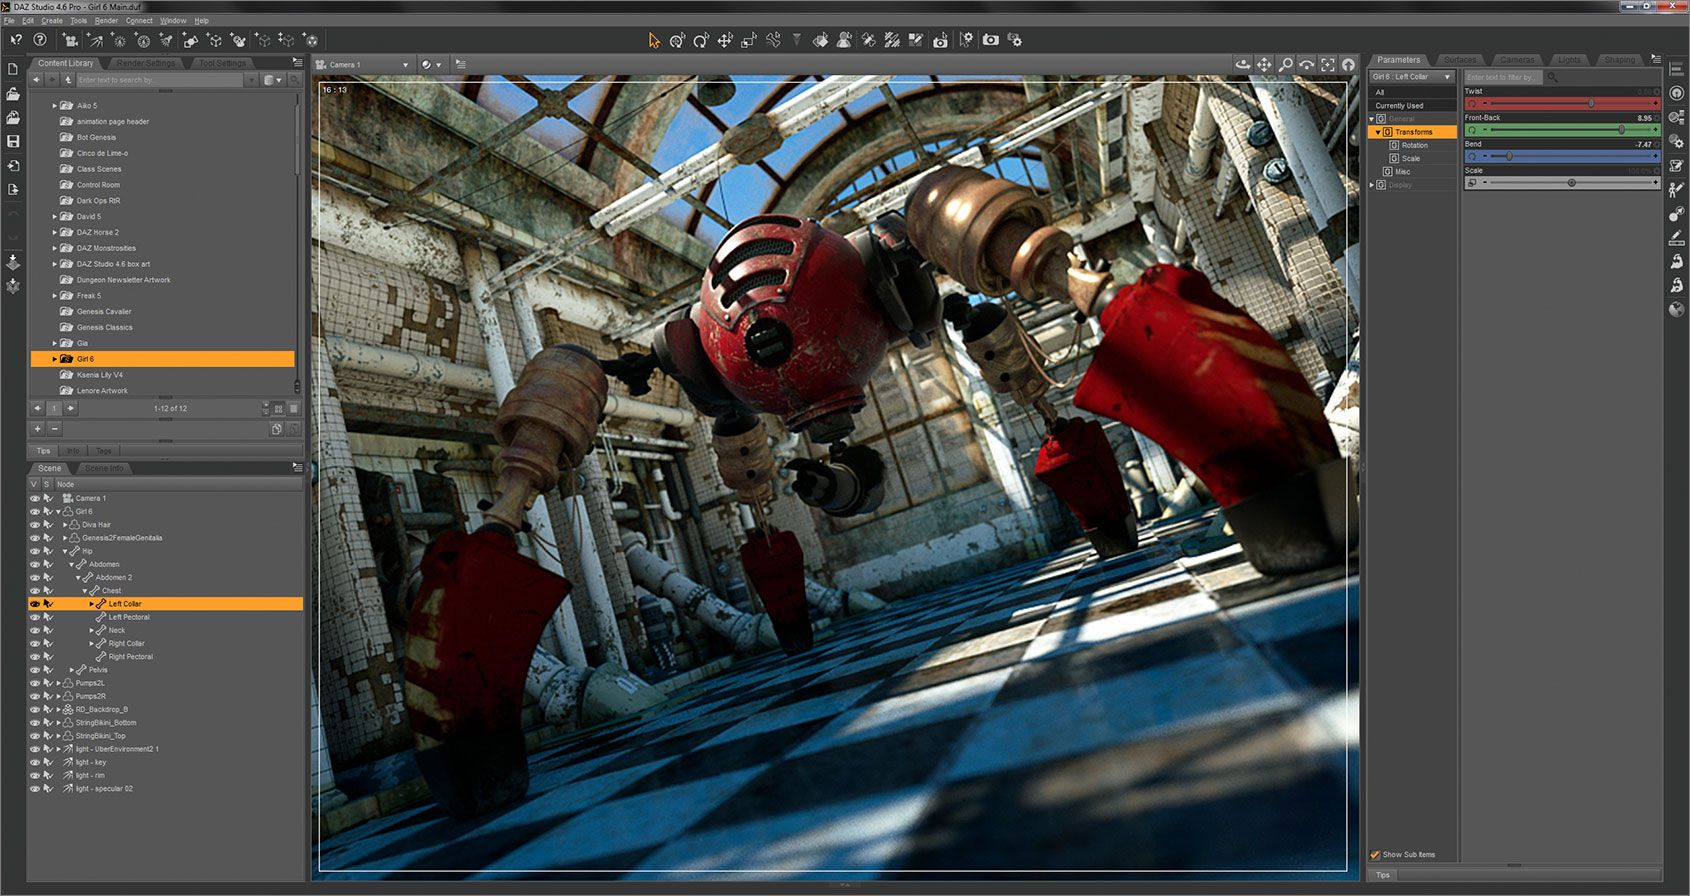 Autodesk Gives Away 25m In Free 3d Modeling Software To Students Animation Tutorial Best Animation Software 3d Animation